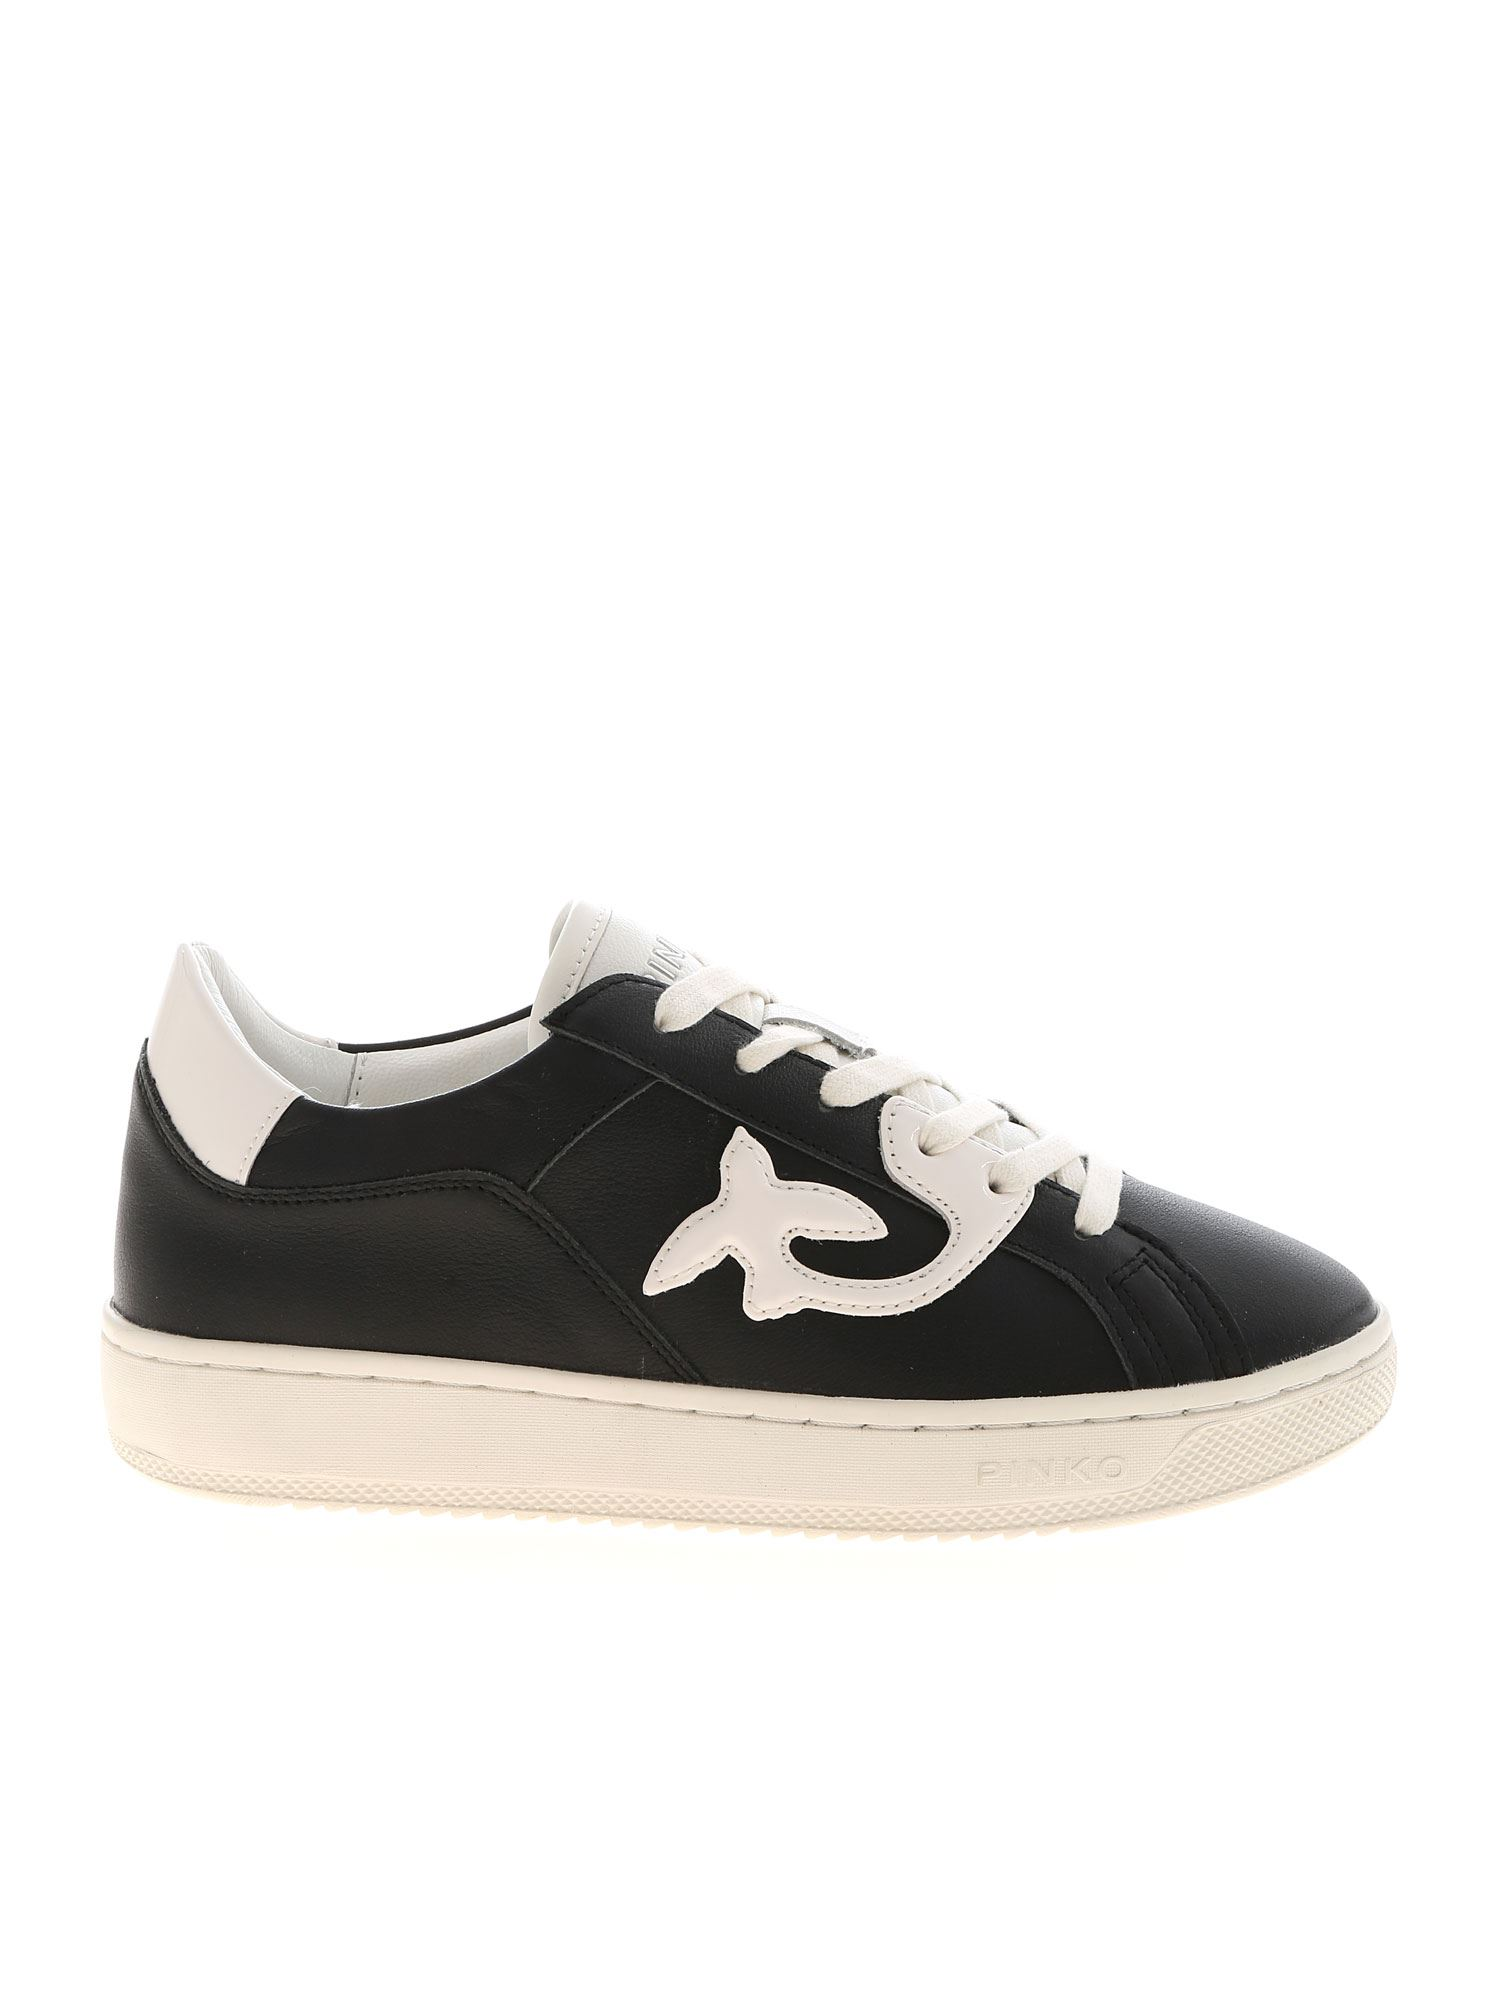 Pinko PINKO LIQUIRIZIA SNEAKERS IN BLACK AND WHITE